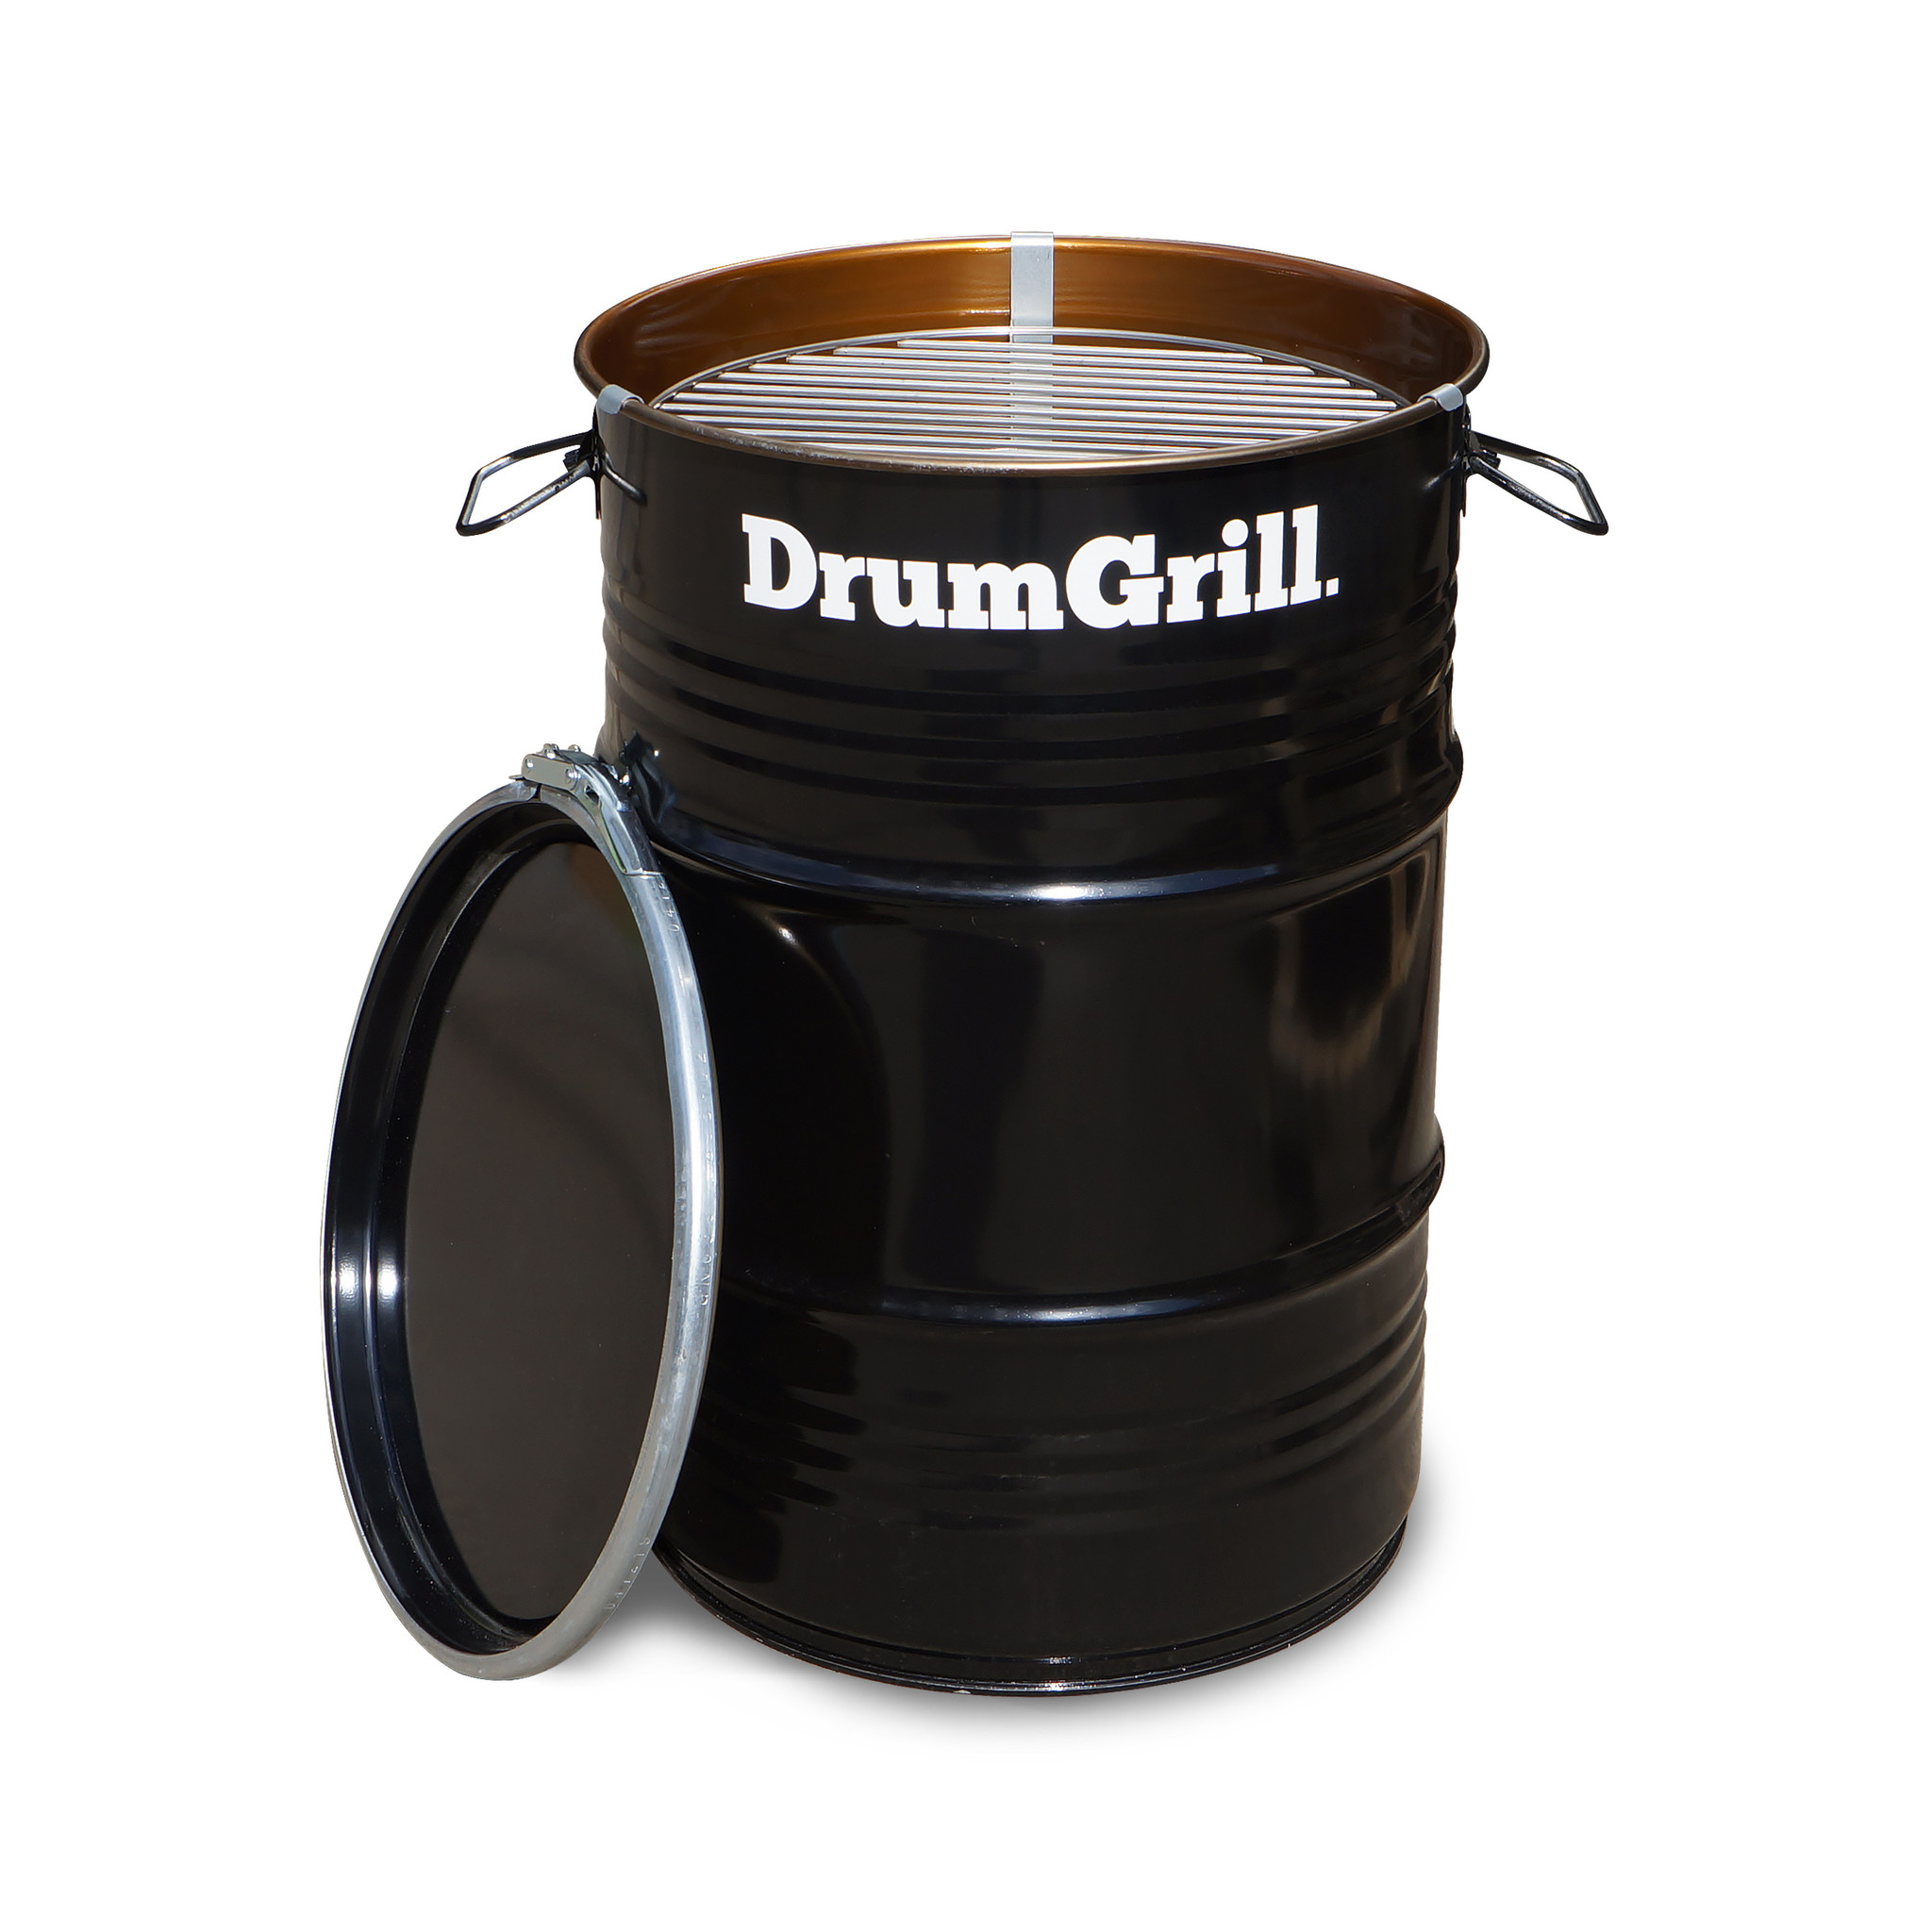 DrumGrill Drumgrill Small 60 Liter Barbecue, vuurkorf en statafel in n